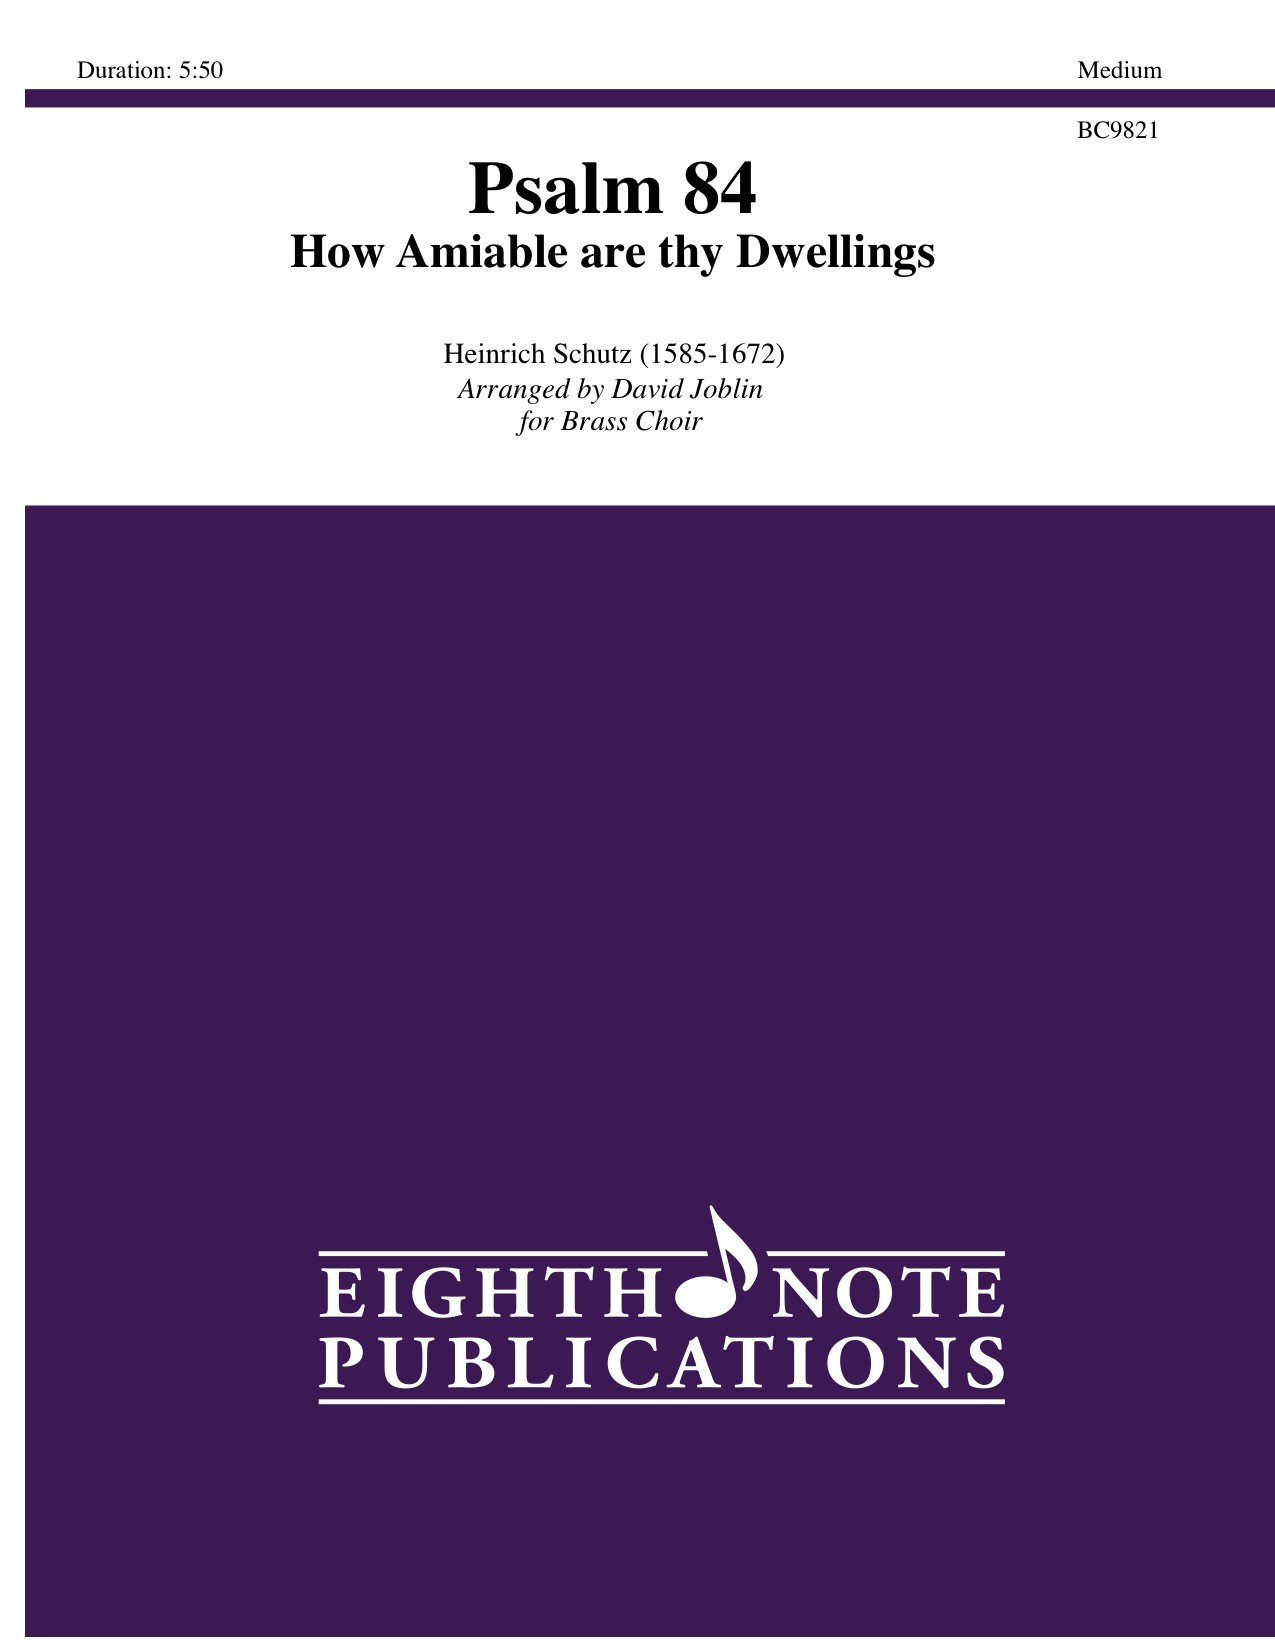 Eighth Note Publications - Psalm 84-How Amiable are thy Dwellings